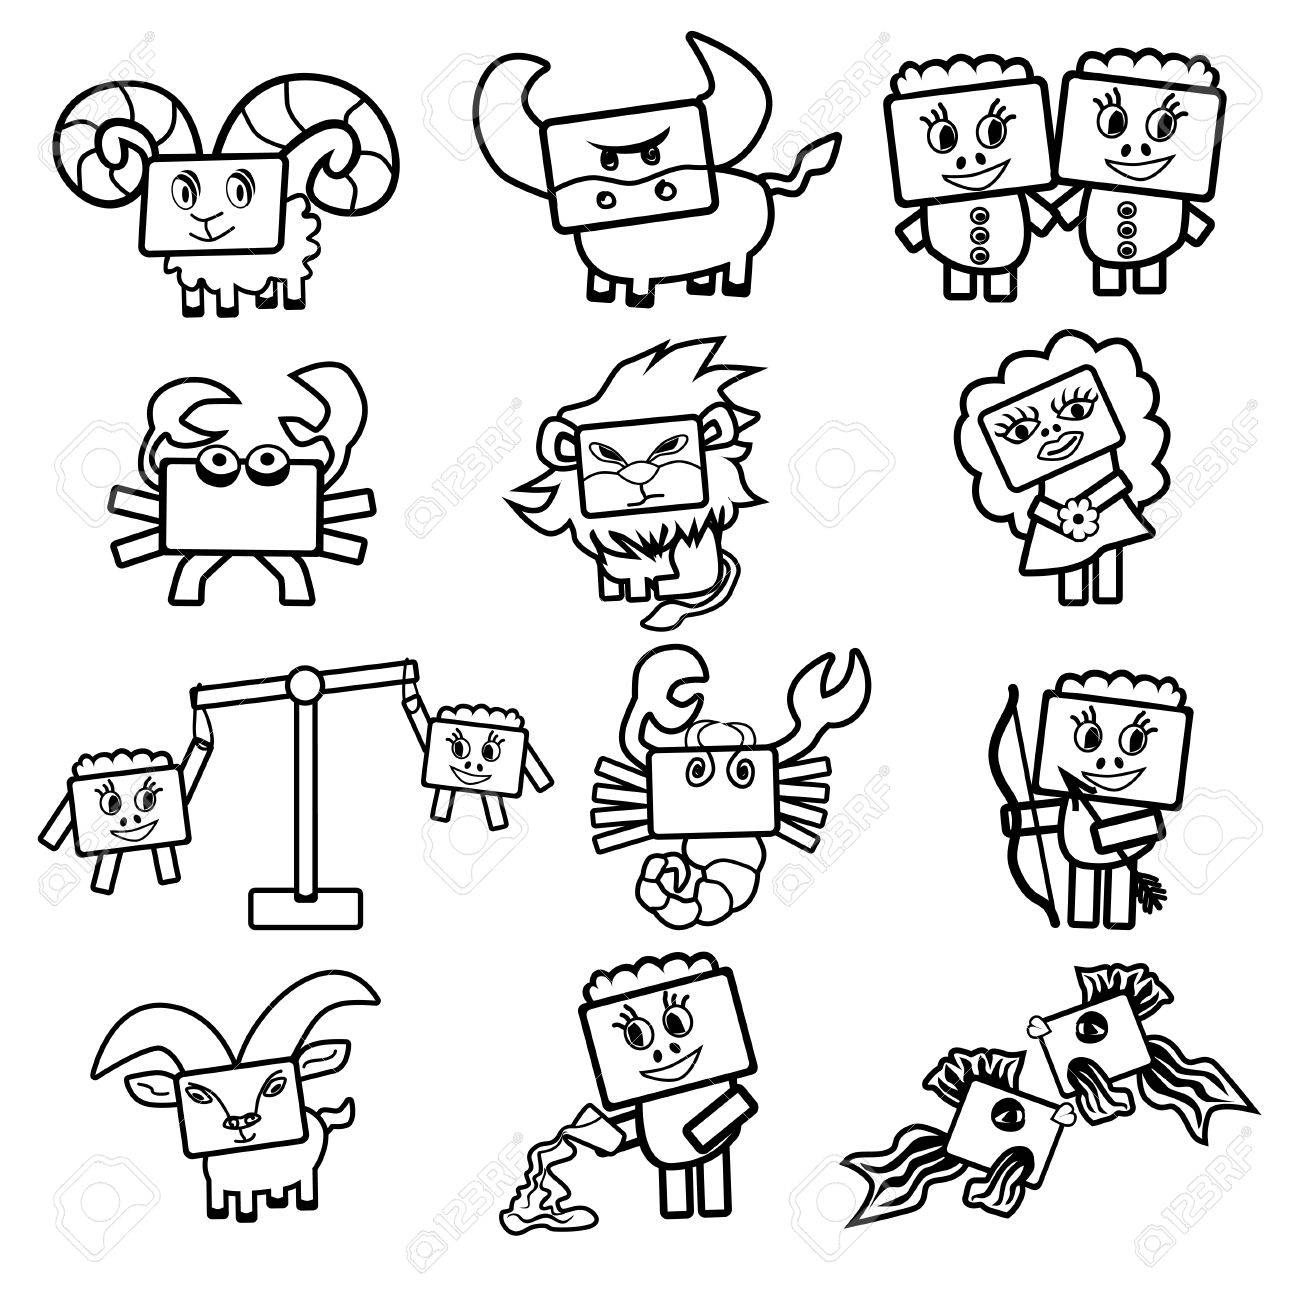 Set of vector icons of the zodiac signs cute cartoon black and white characters with